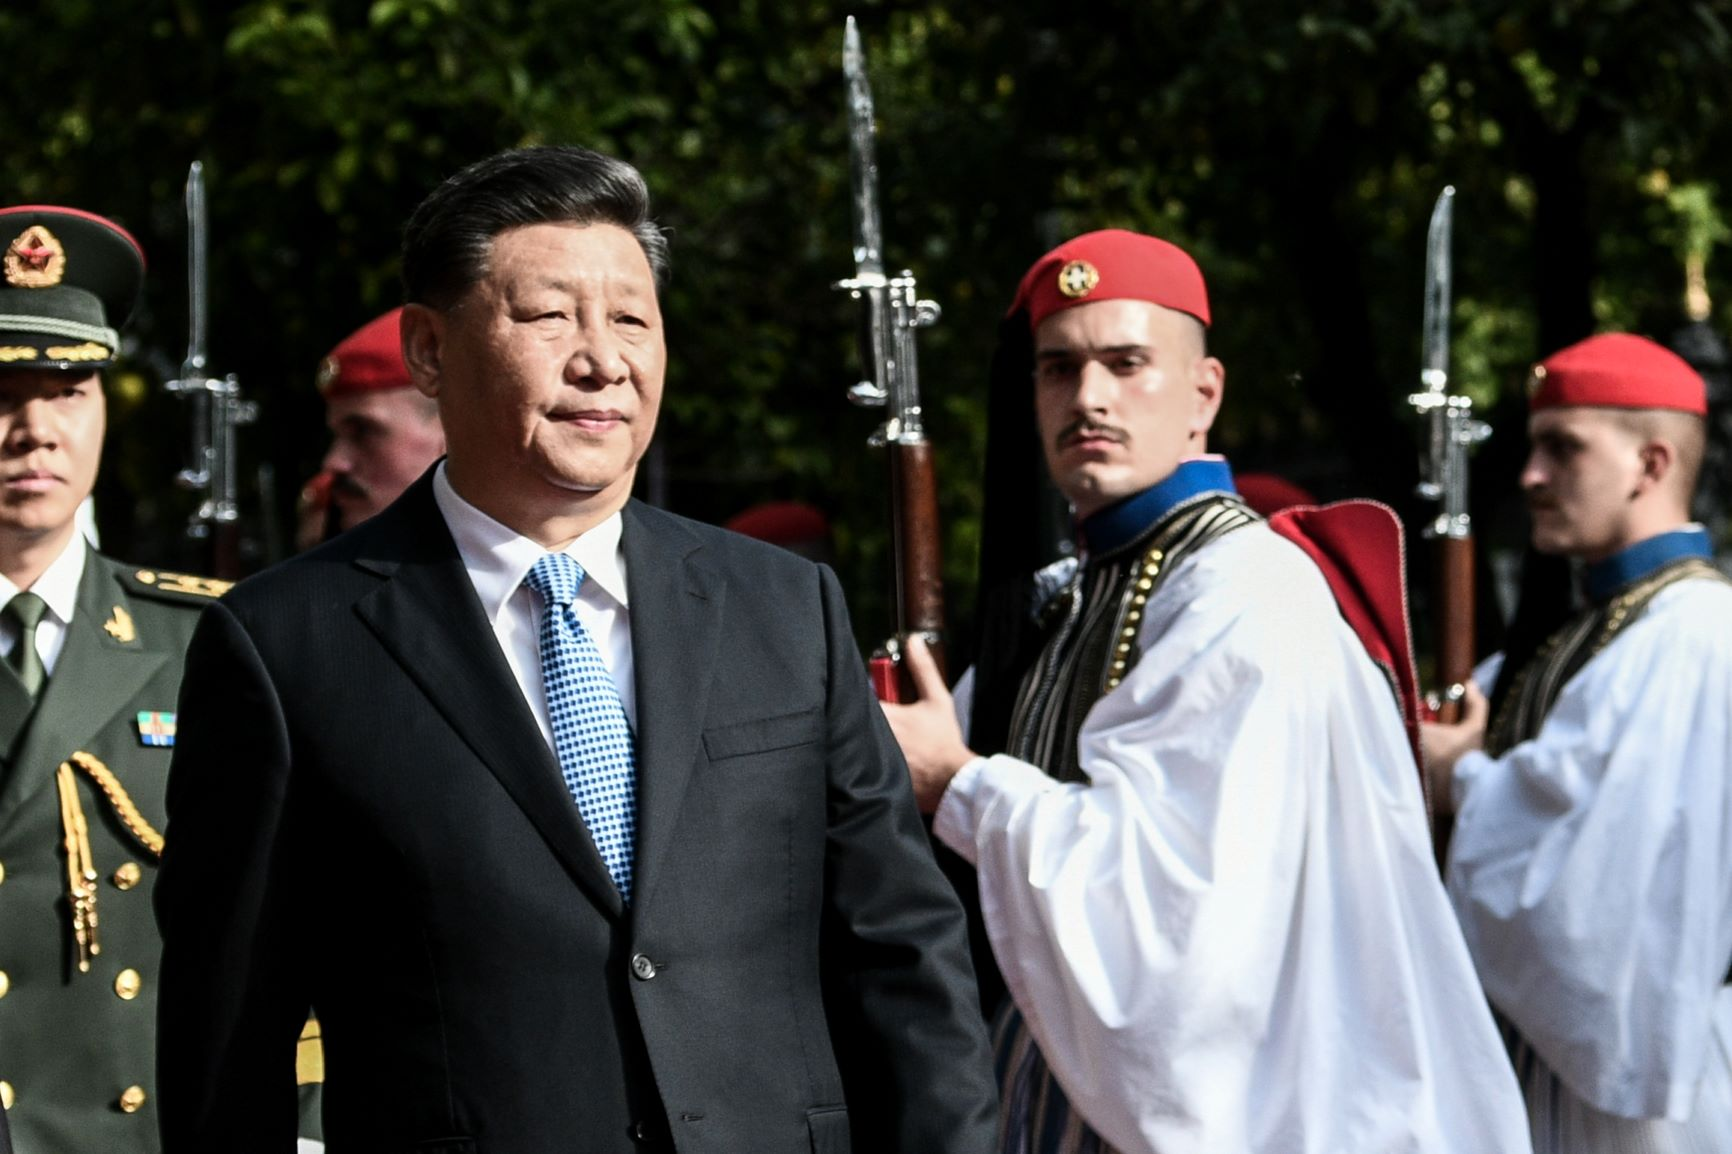 The imposition of law and order overshadowed Xi Jinping's visit